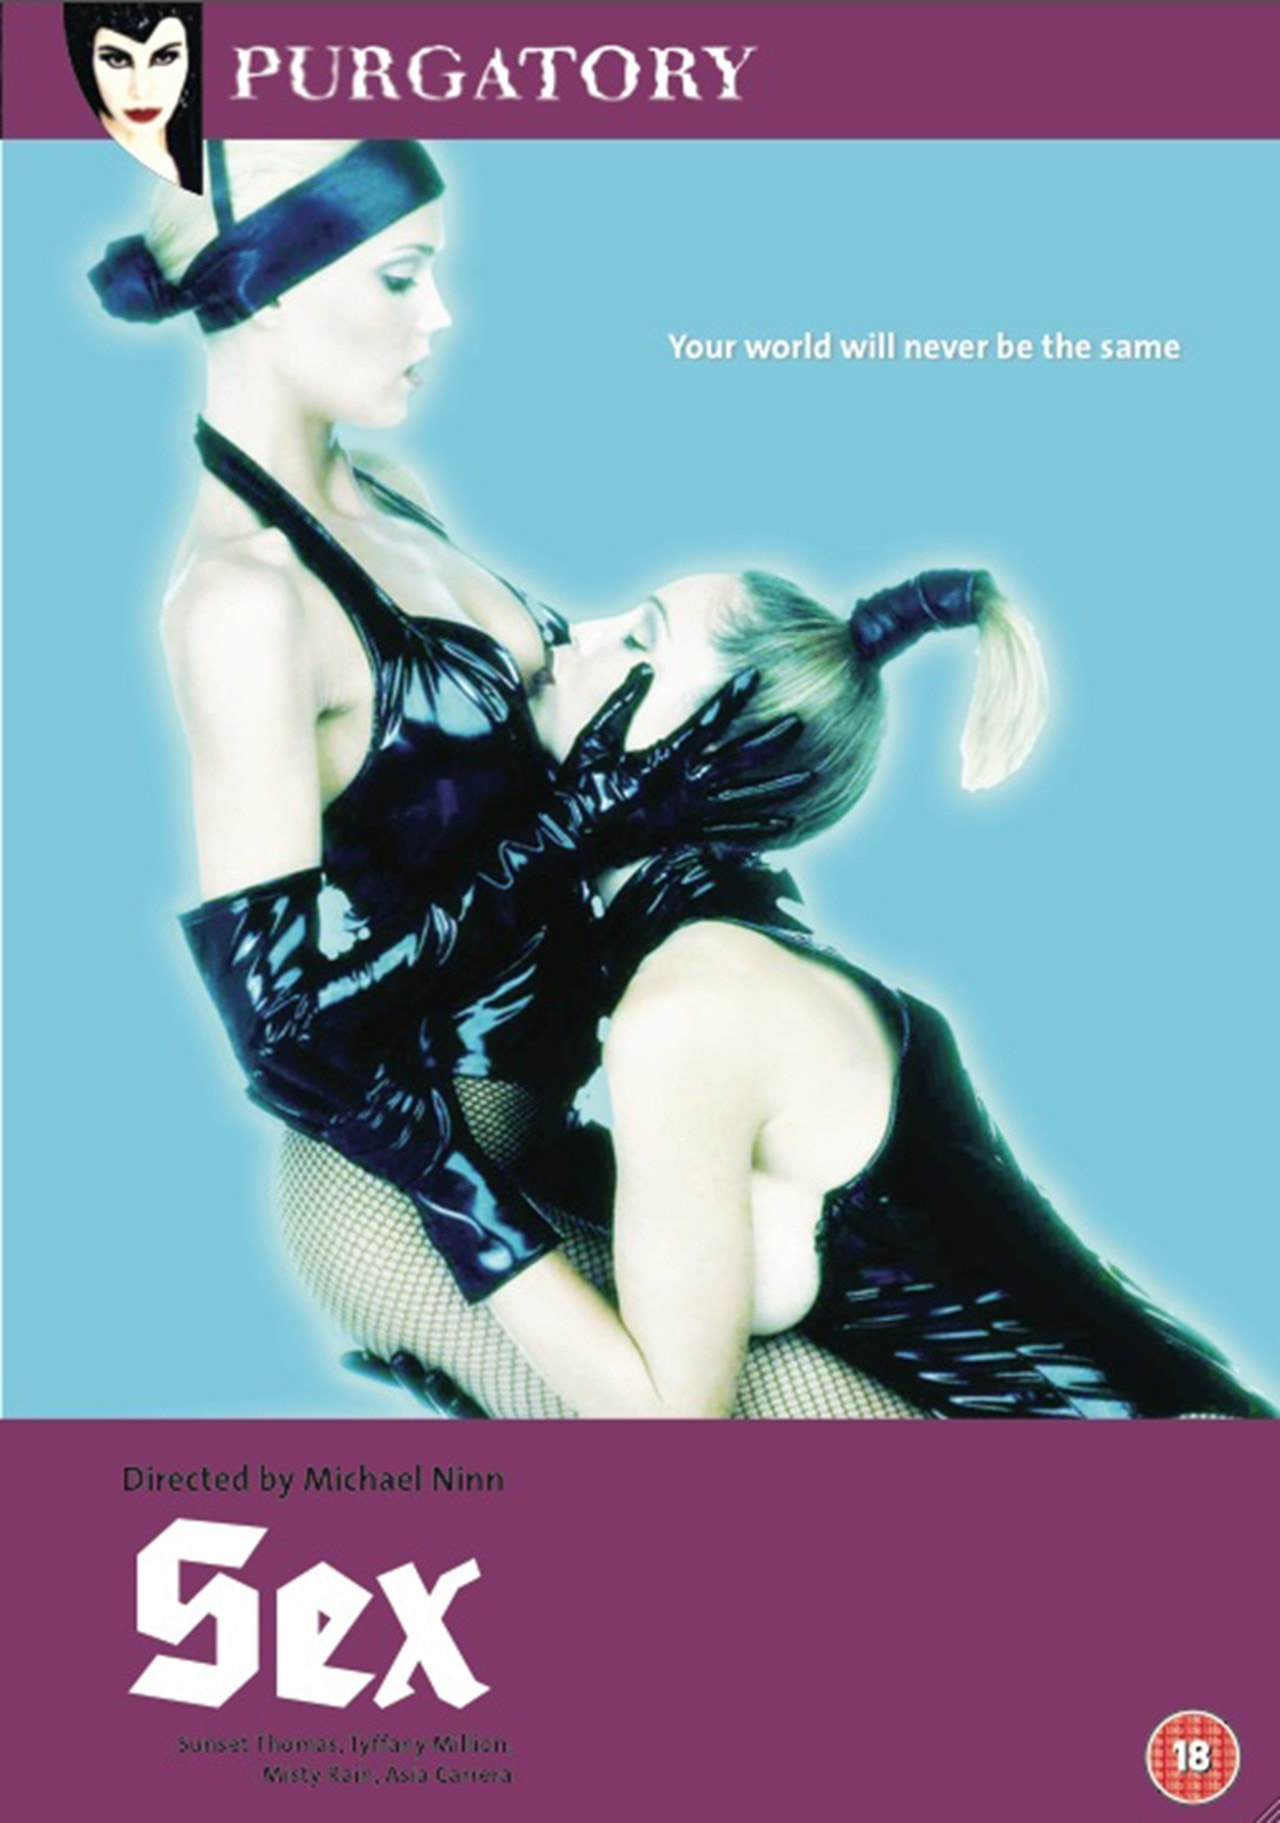 Sex | DVD | Free shipping over £20 | HMV Store